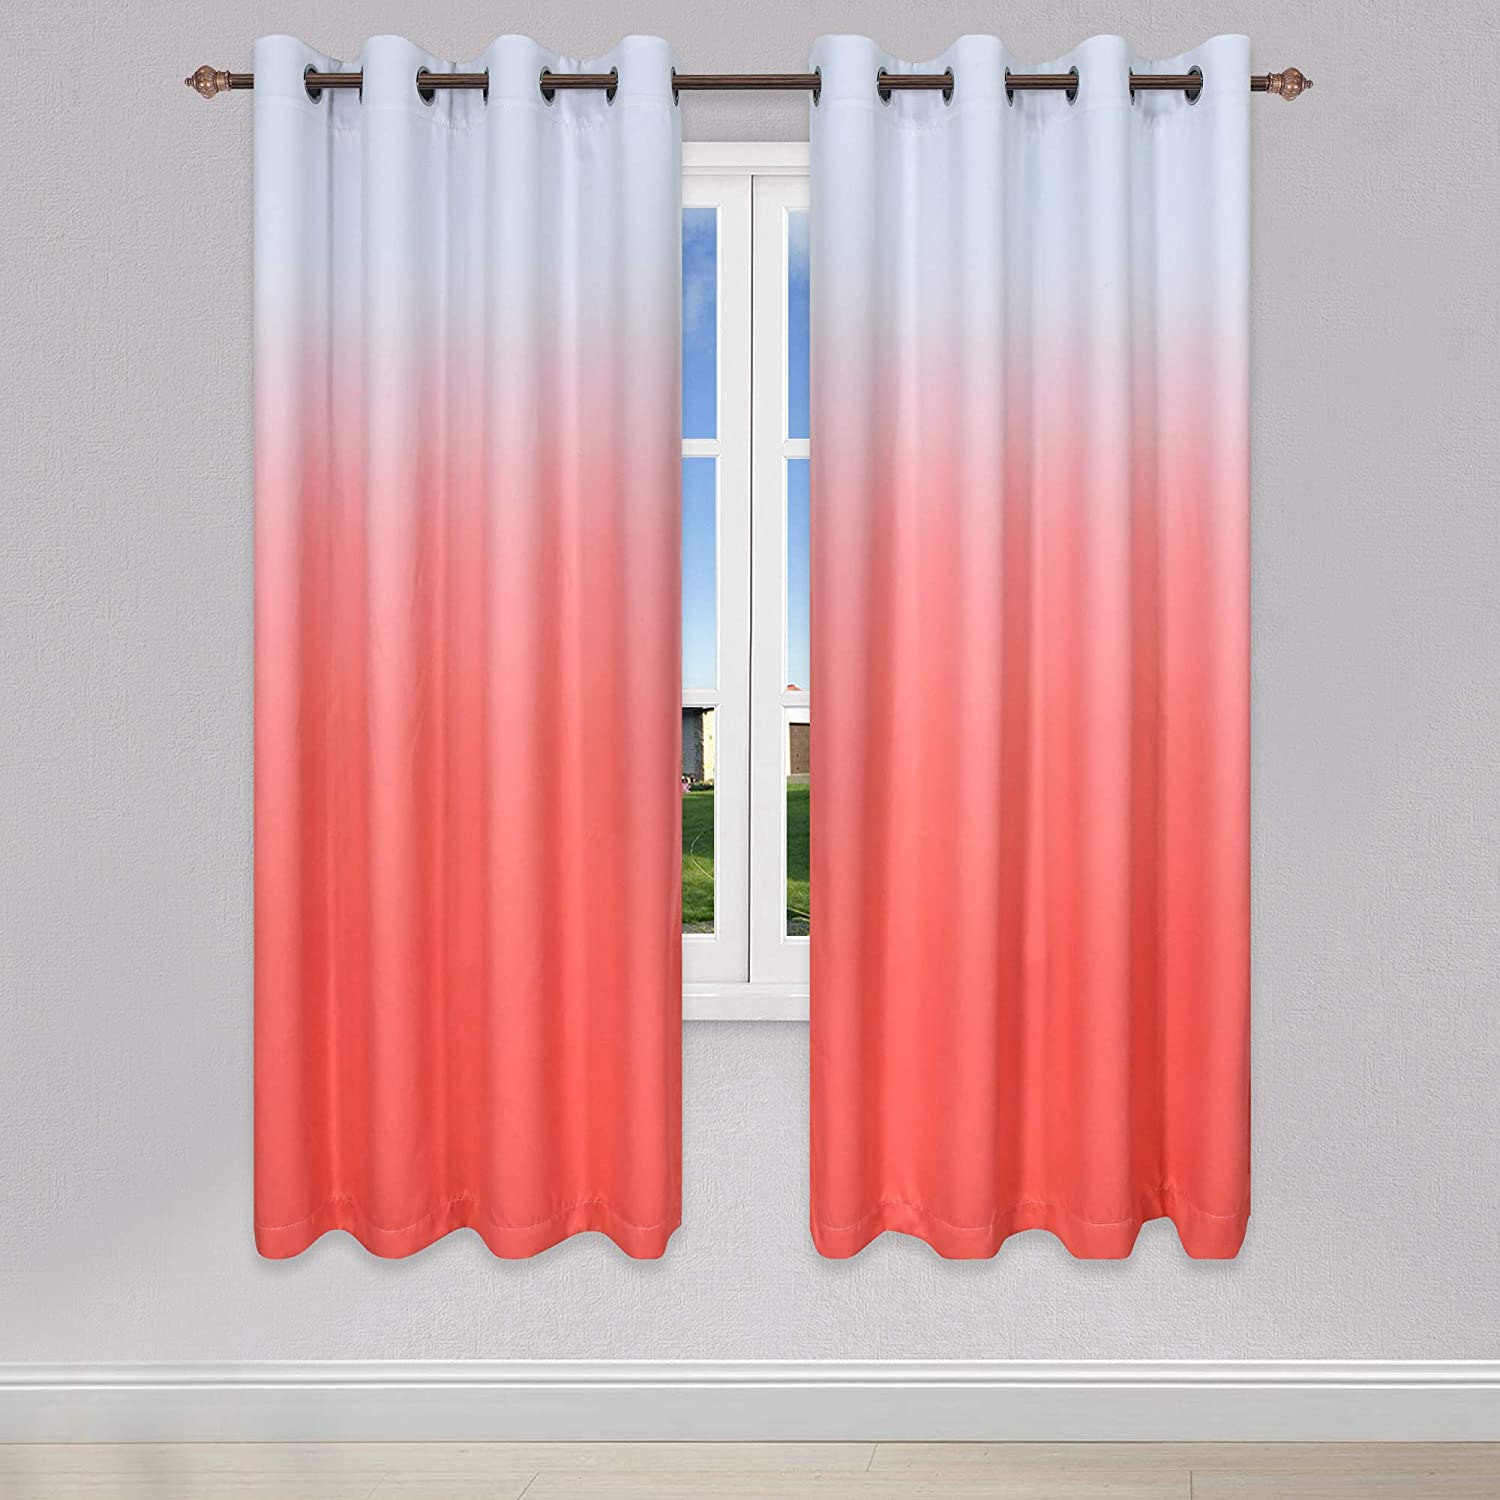 KEQIAOSUOCAI 直営ストア Coral Ombre Curtains for Bedroom [並行輸入品] Set of Room Living